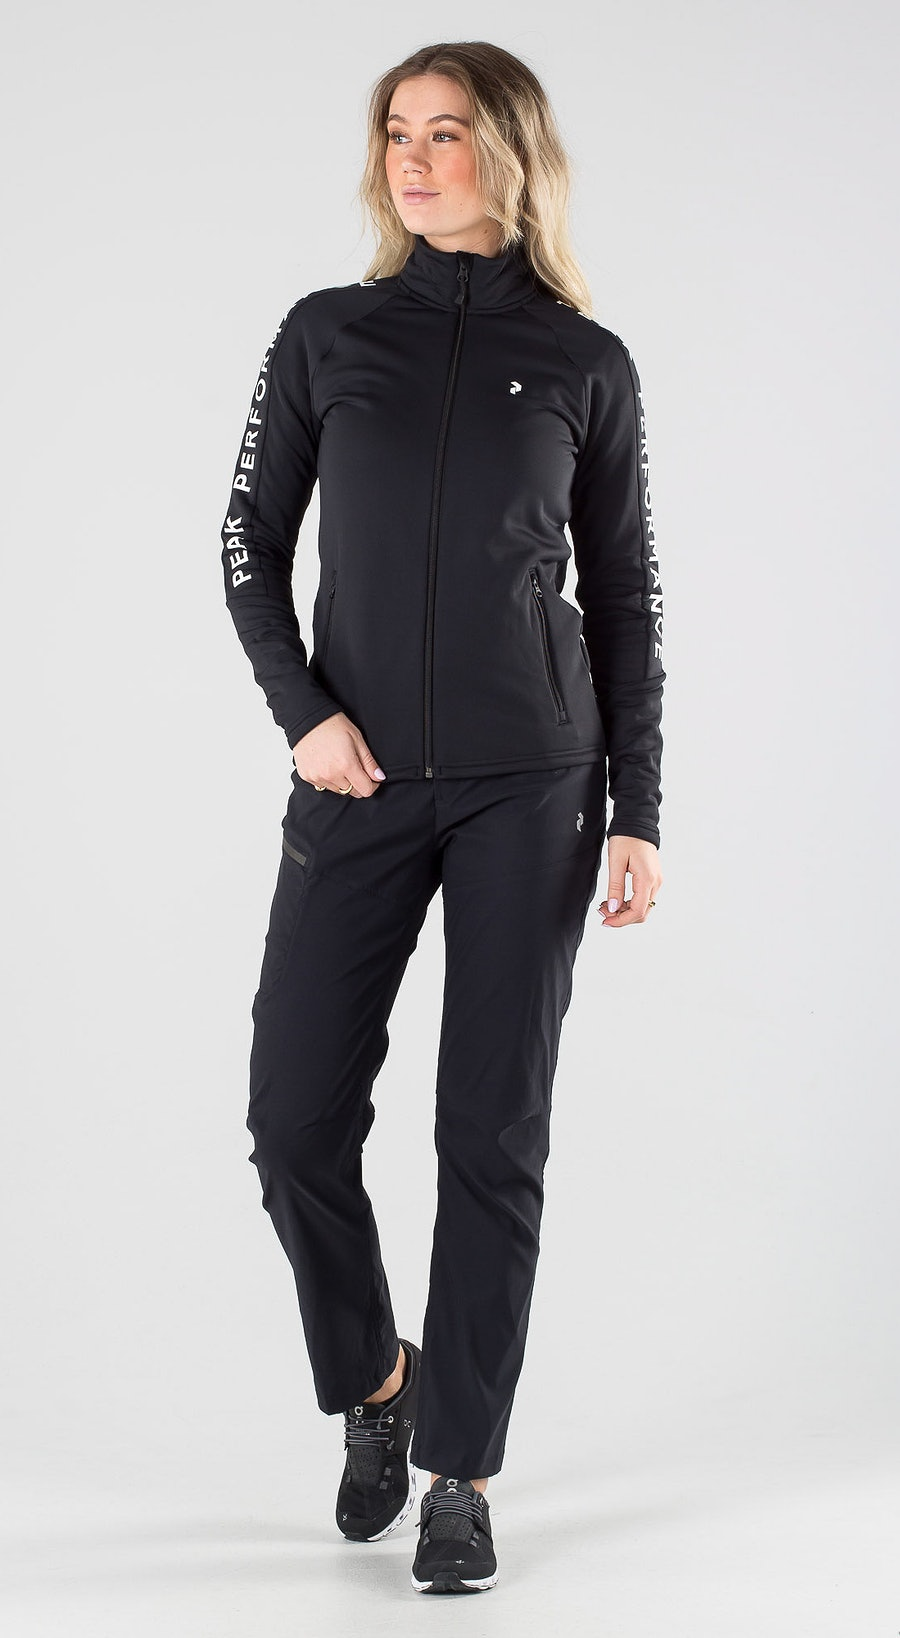 Peak Performance Rider Zip Black Outfit Multi